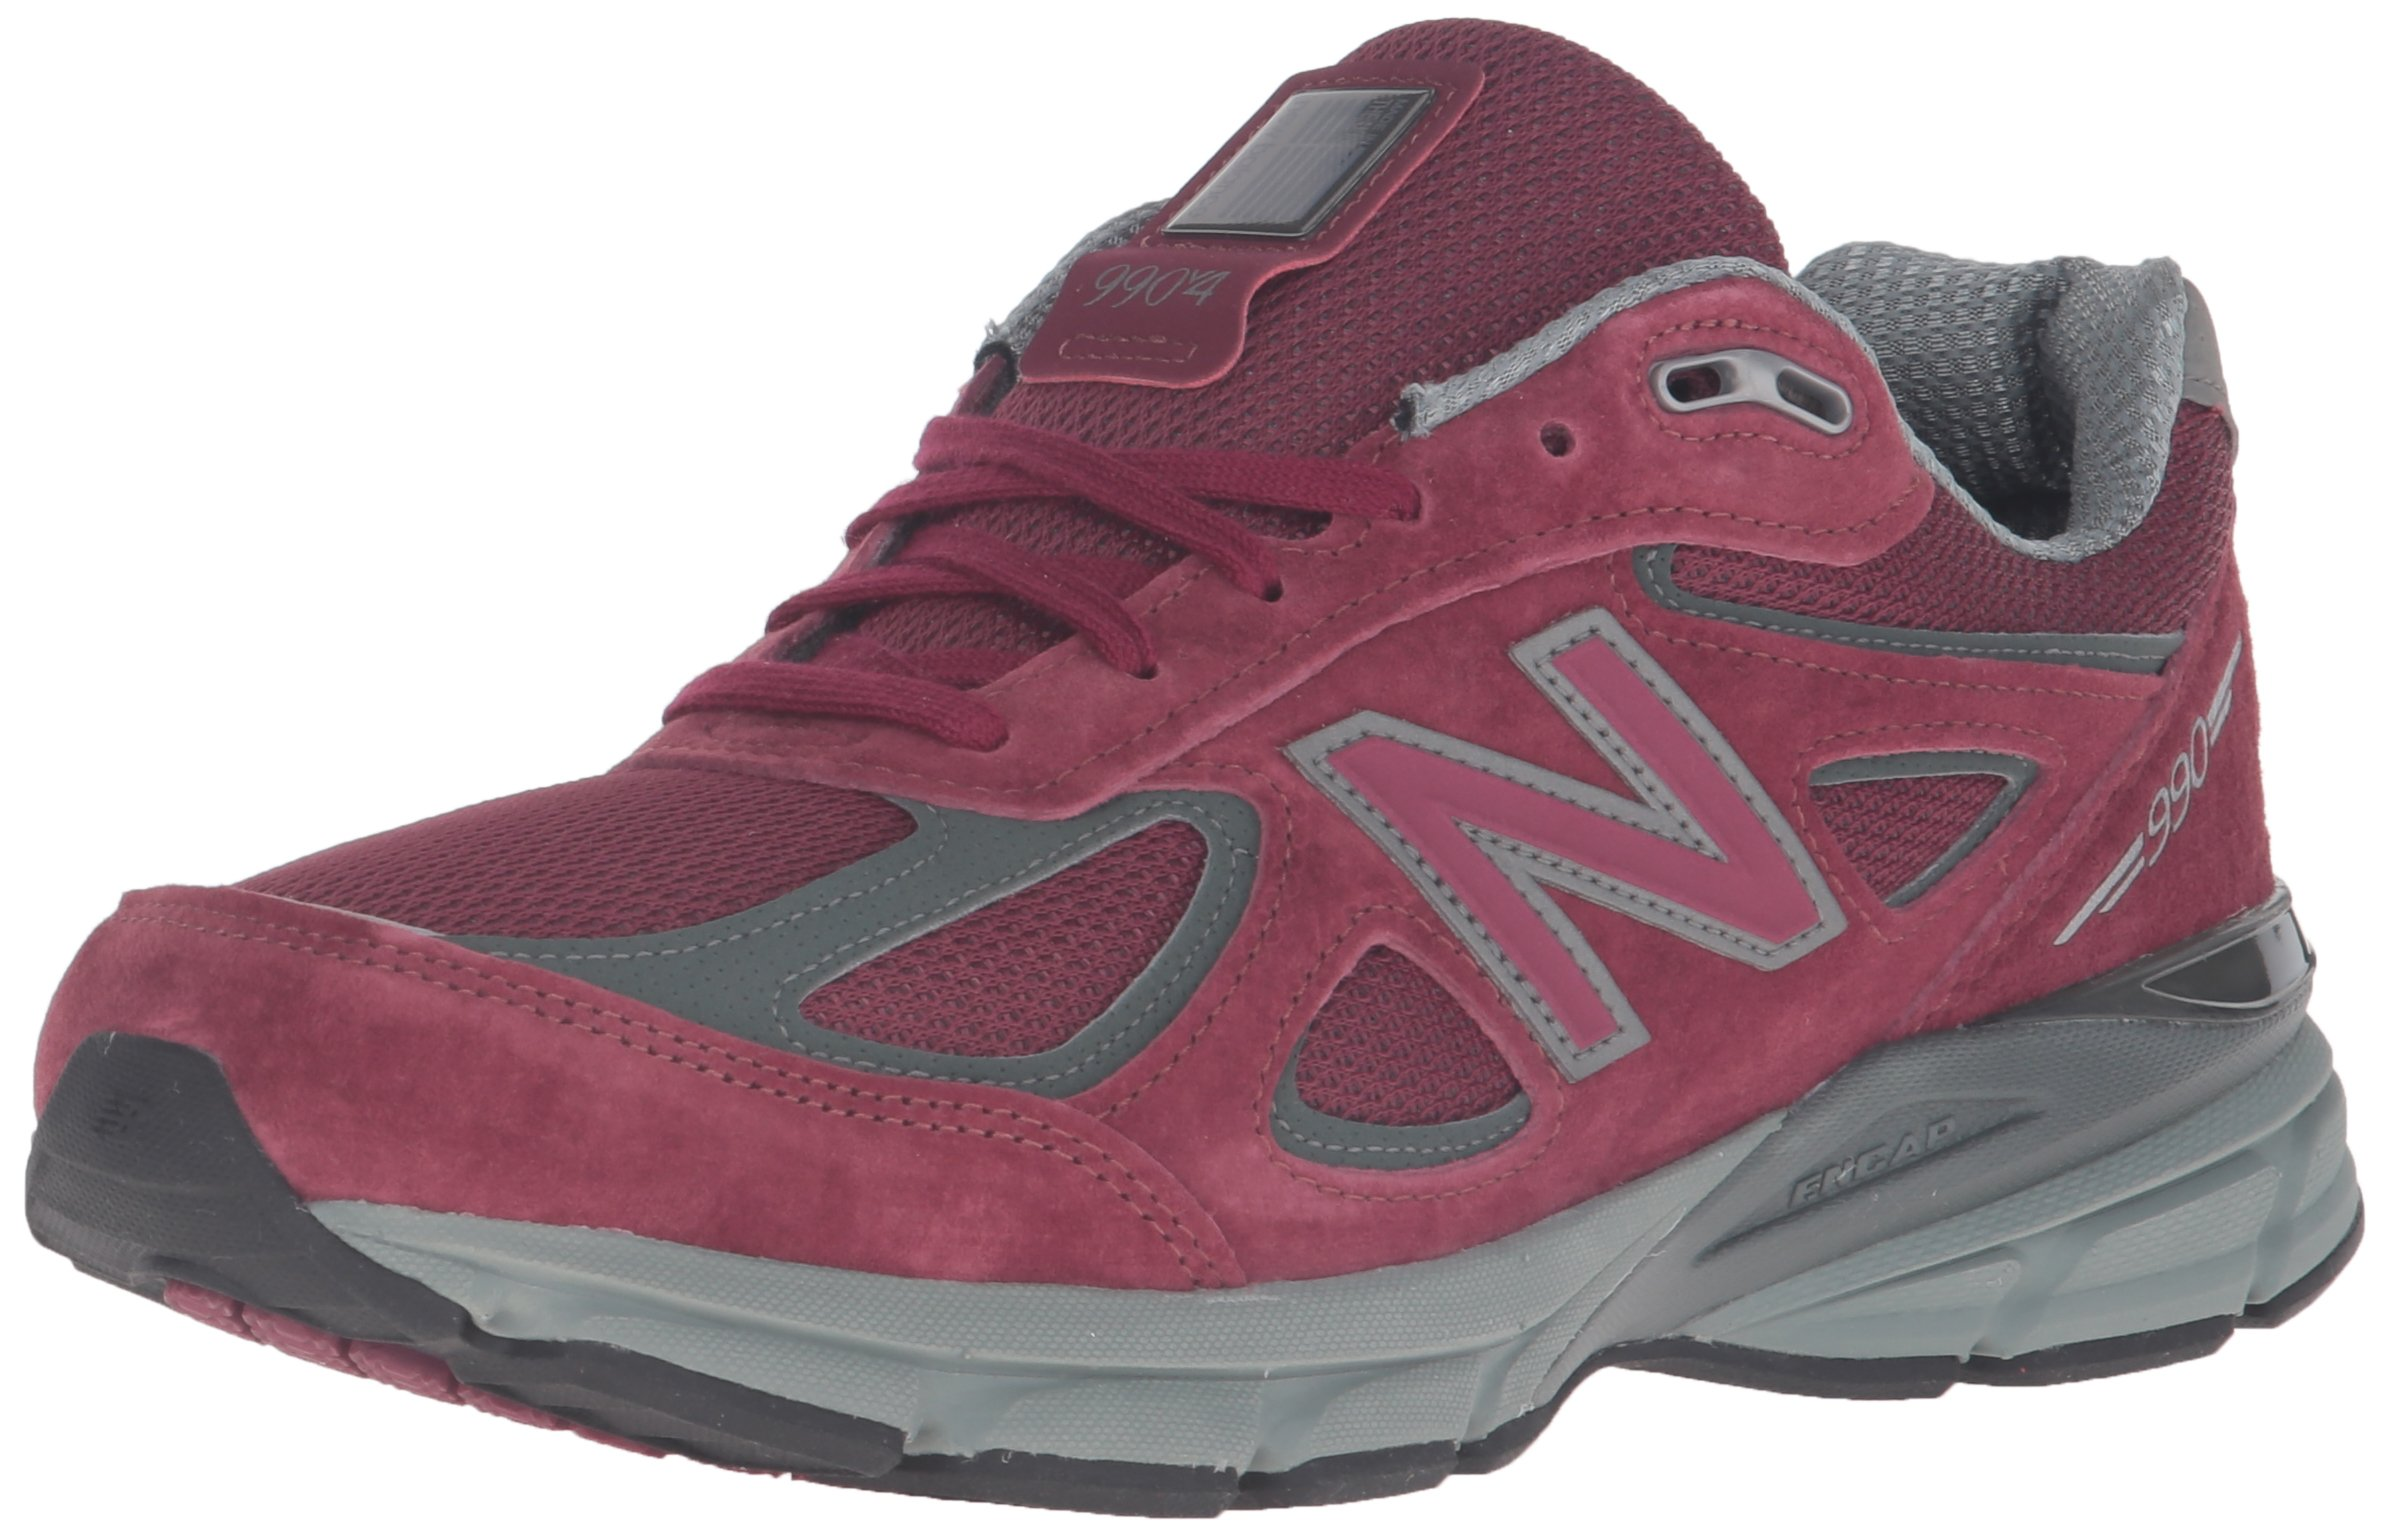 New Balance Men's M990BU4 Running Shoe,Burgundy,10 D US